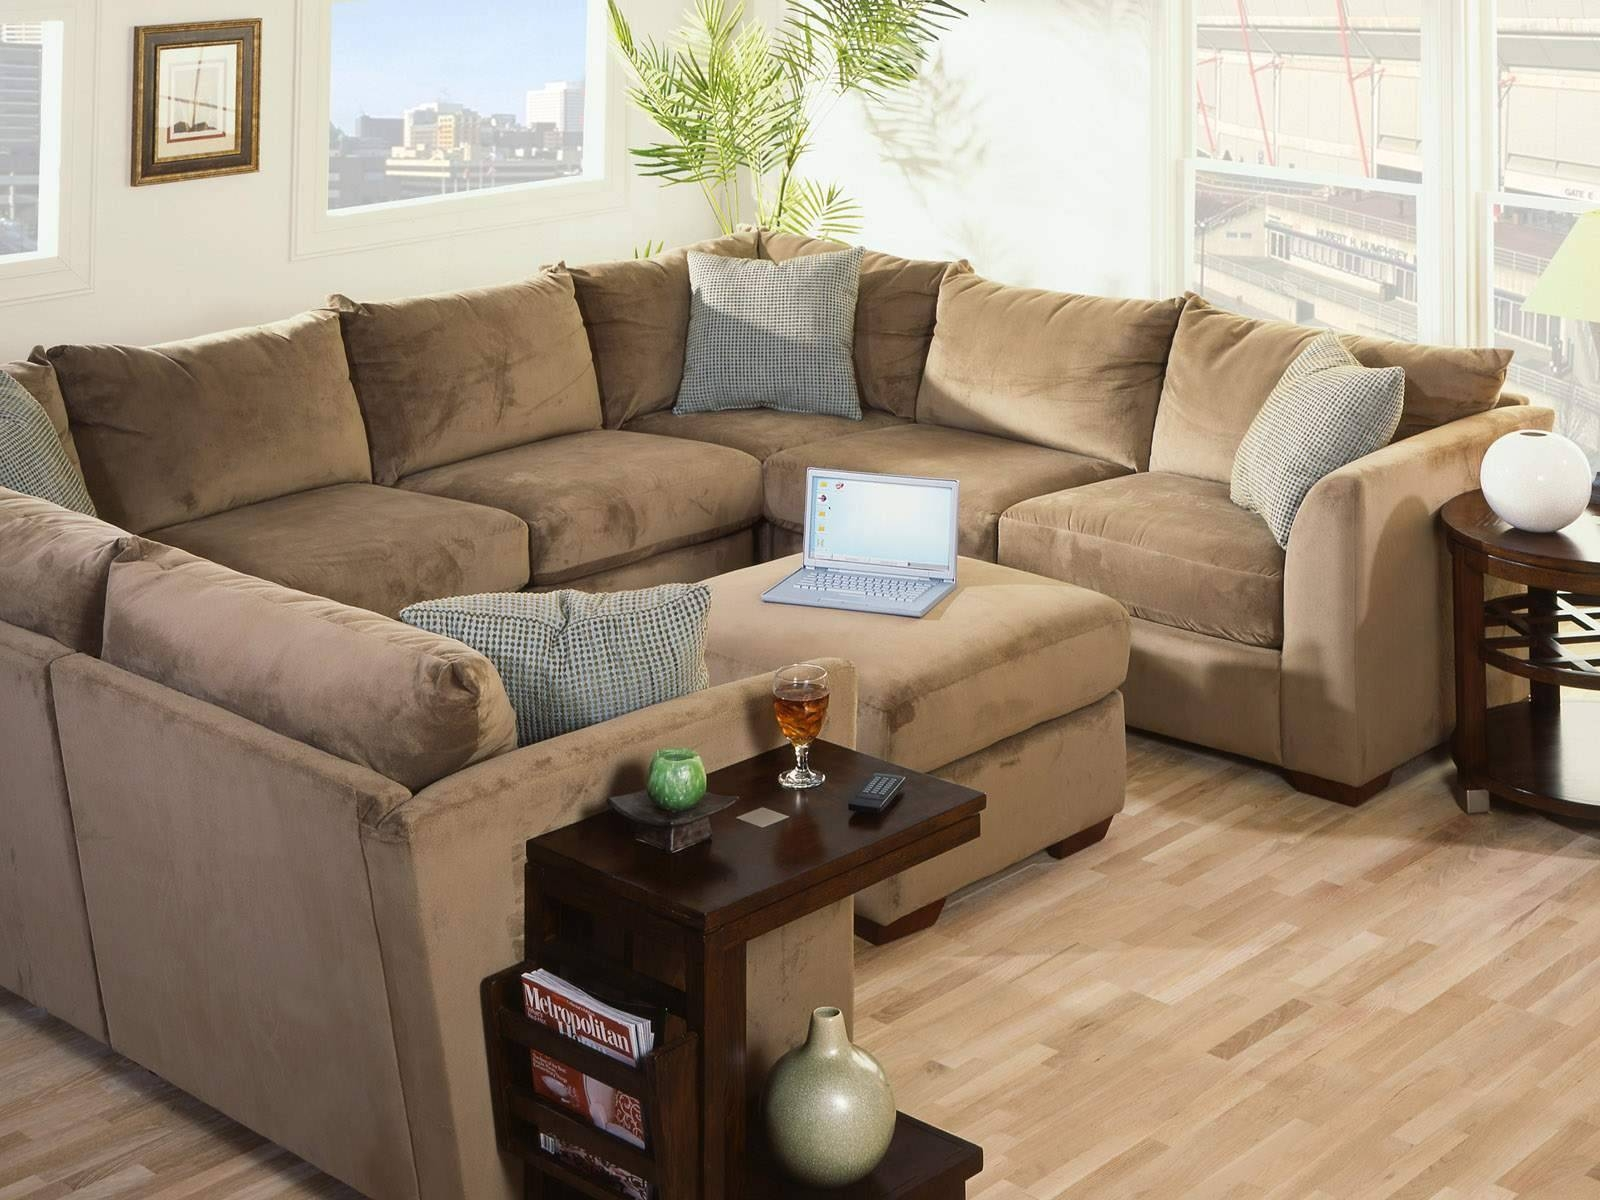 Discount Living Room Furniture | Couches Loveseats Sofa Sectionals regarding Big Lots Sofa Sleeper (Image 6 of 30)